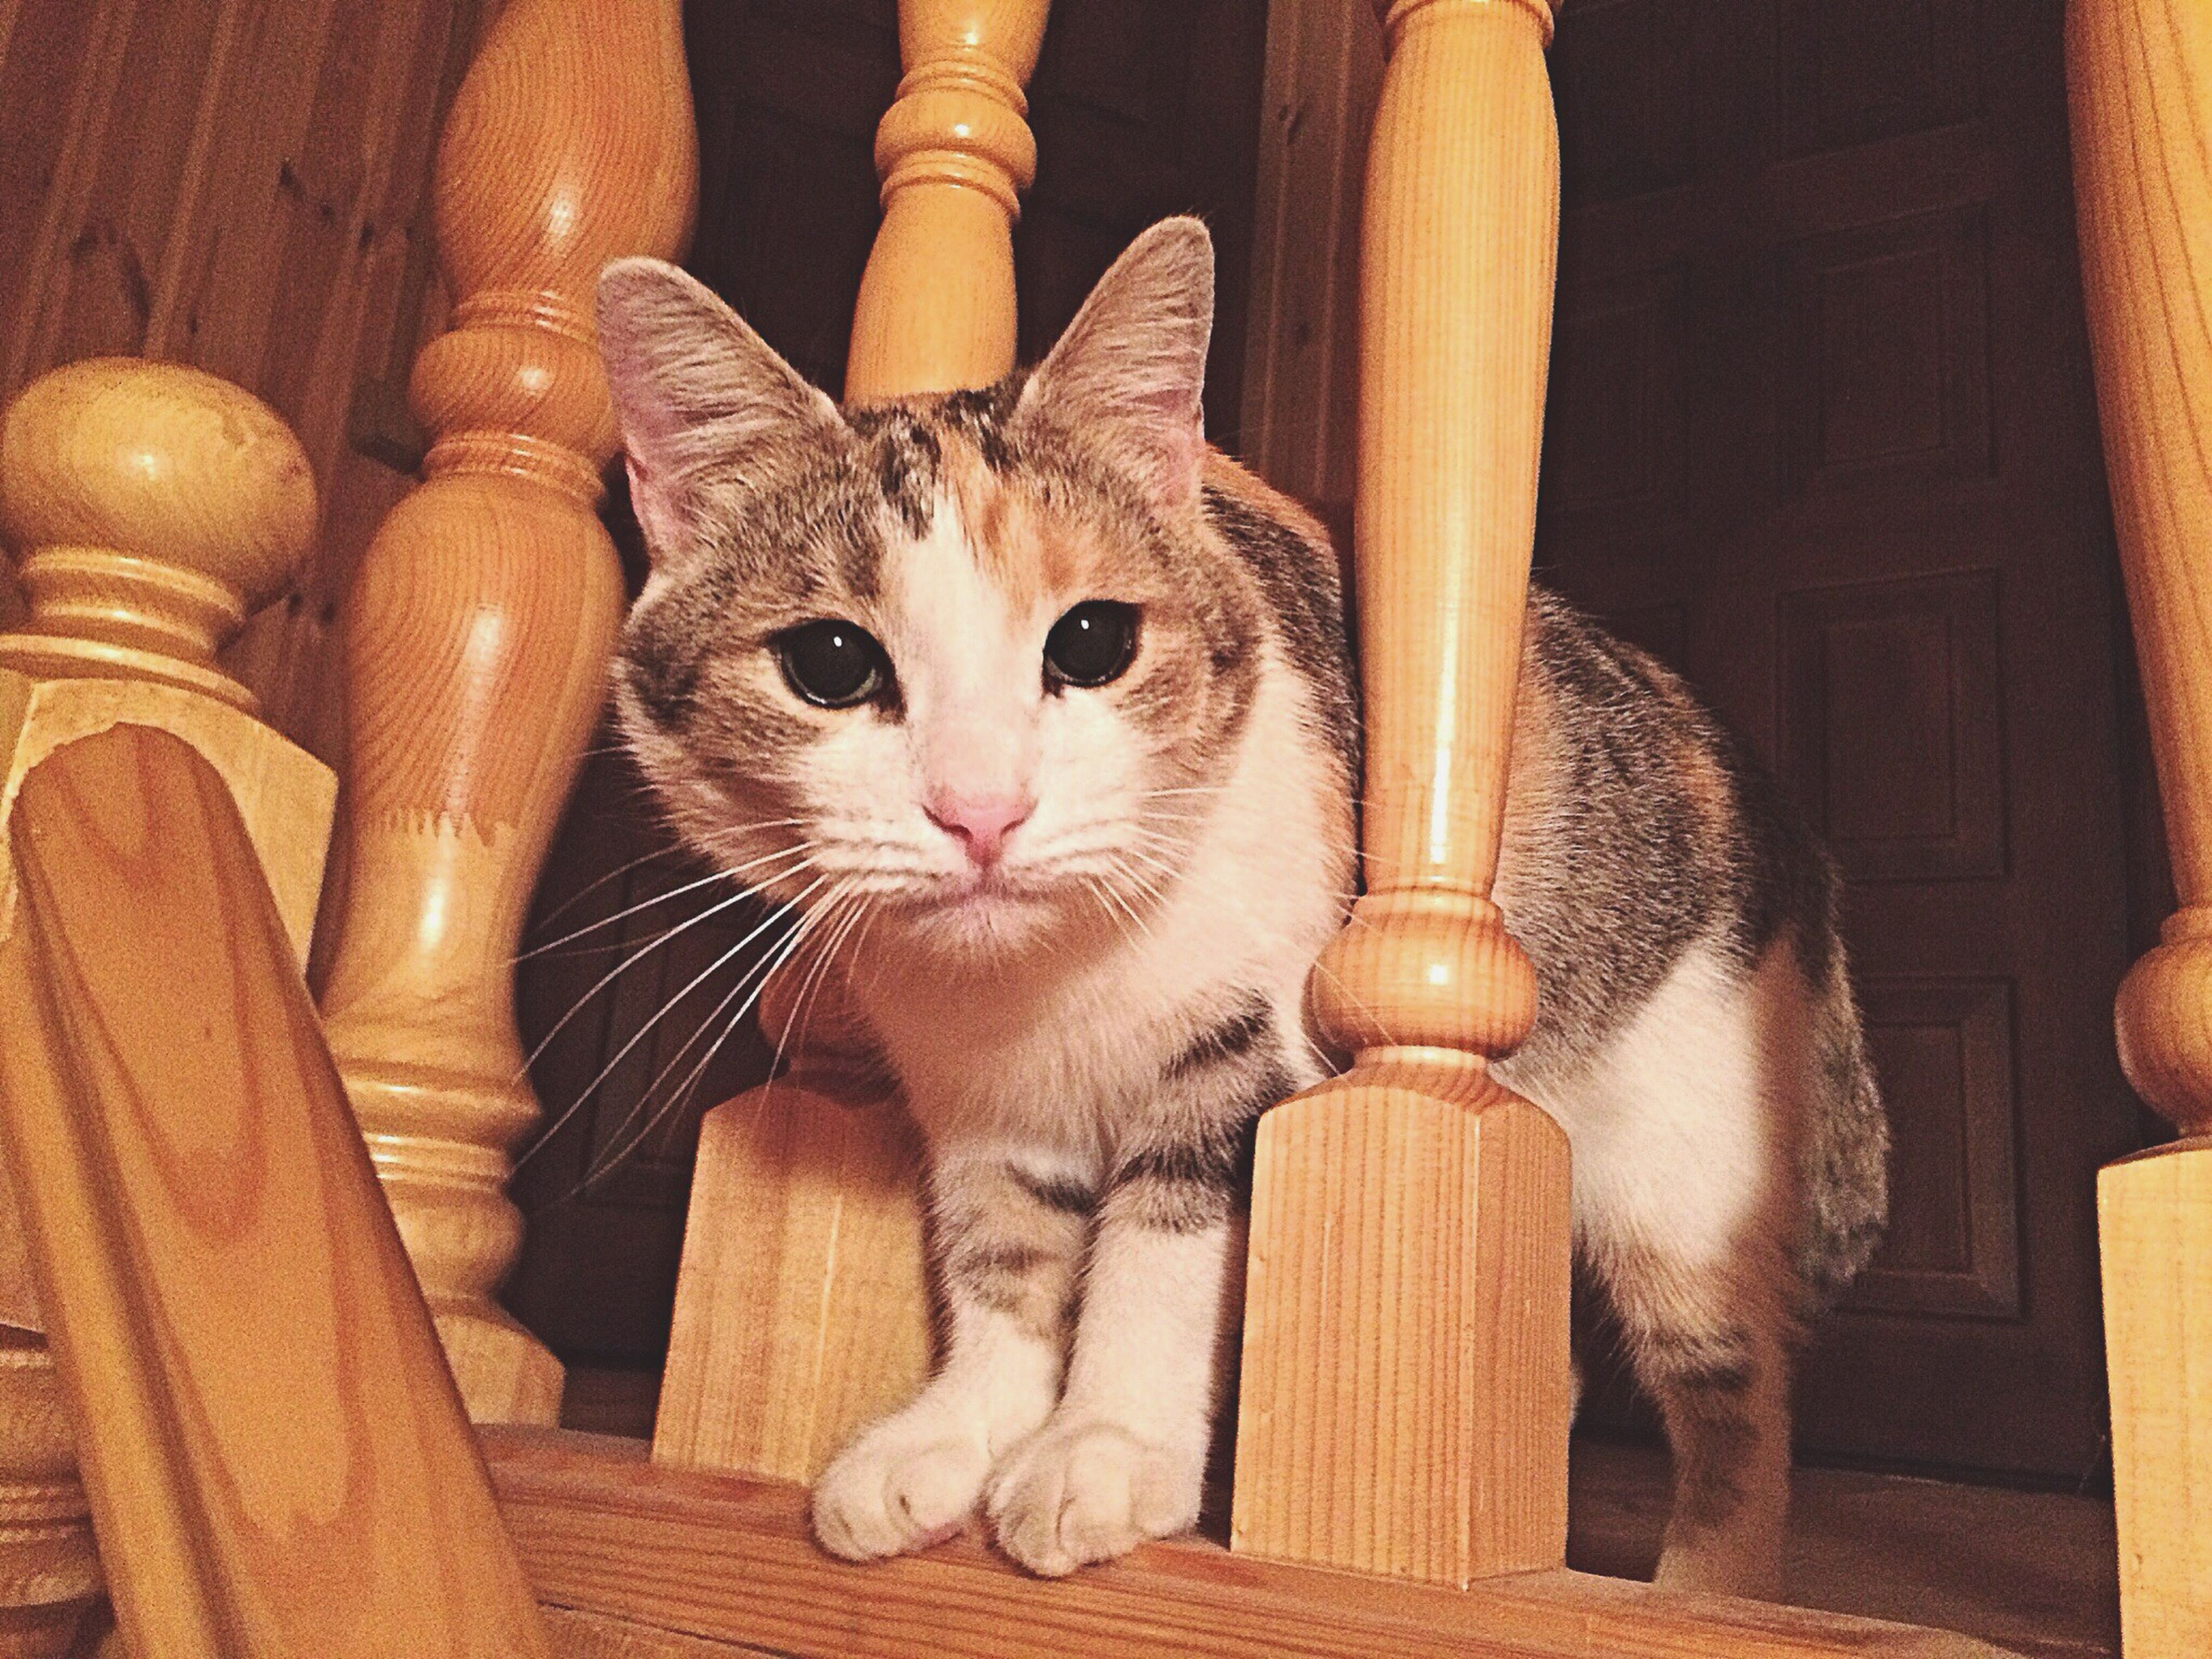 domestic cat, domestic animals, cat, pets, animal themes, mammal, feline, indoors, portrait, looking at camera, one animal, whisker, kitten, home interior, relaxation, no people, close-up, wood - material, young animal, sitting